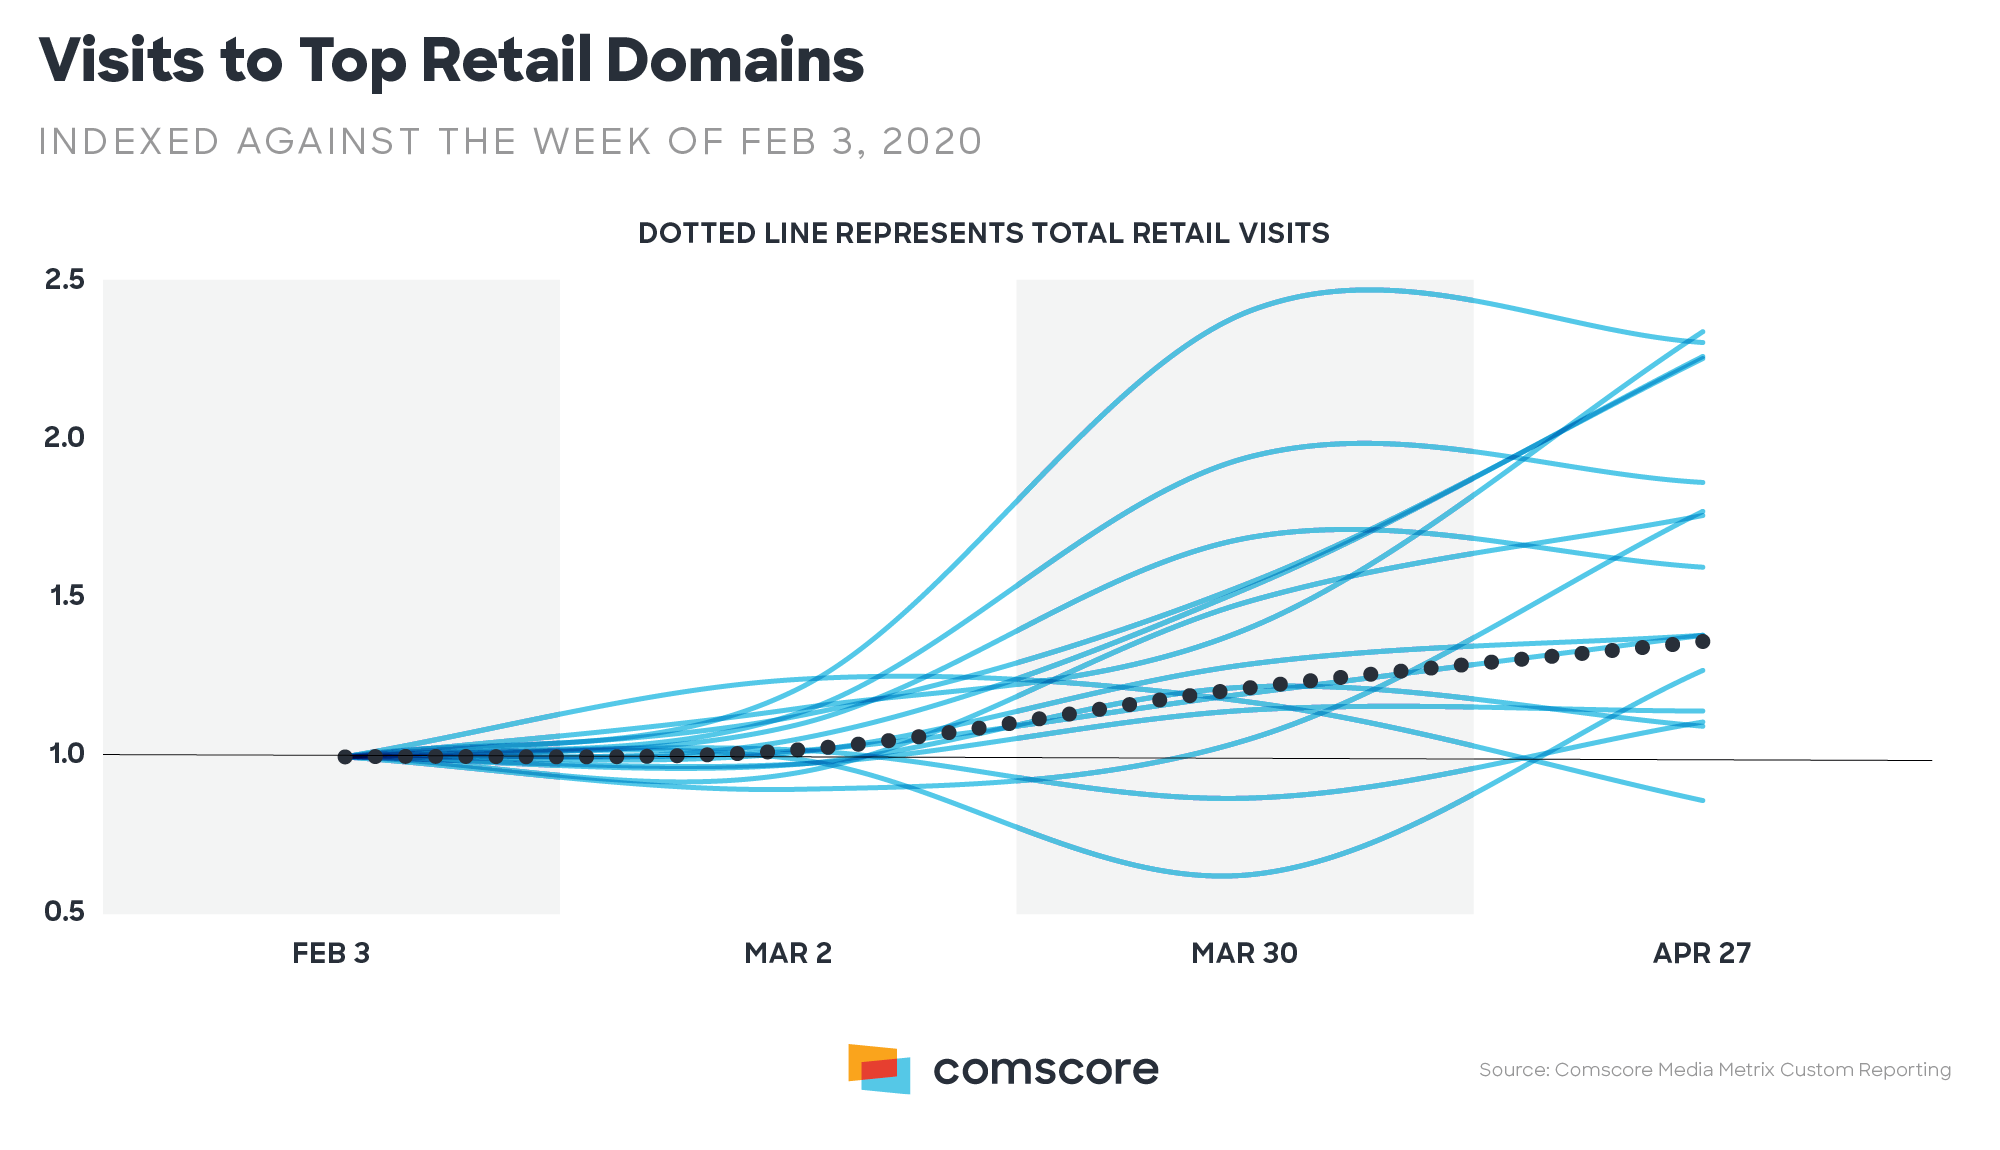 Top retail domains